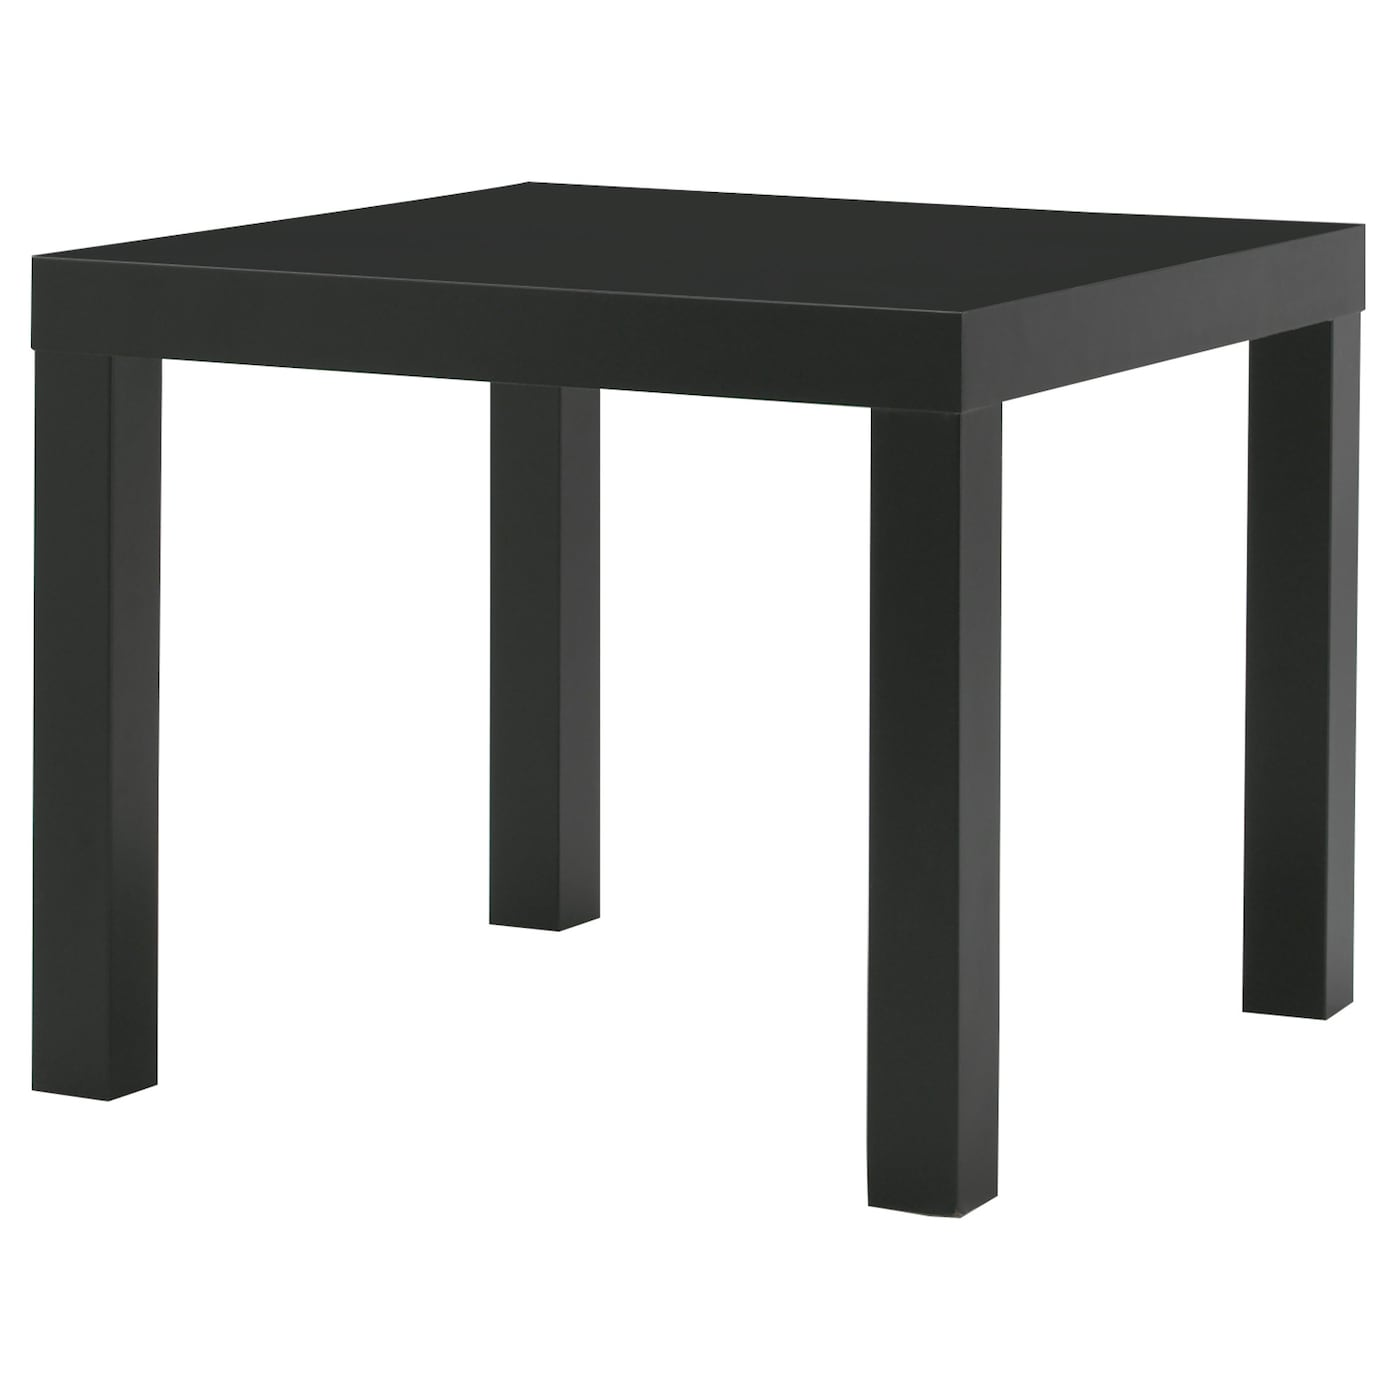 Lack side table black 55x55 cm ikea - Table basse transformable en table haute ikea ...